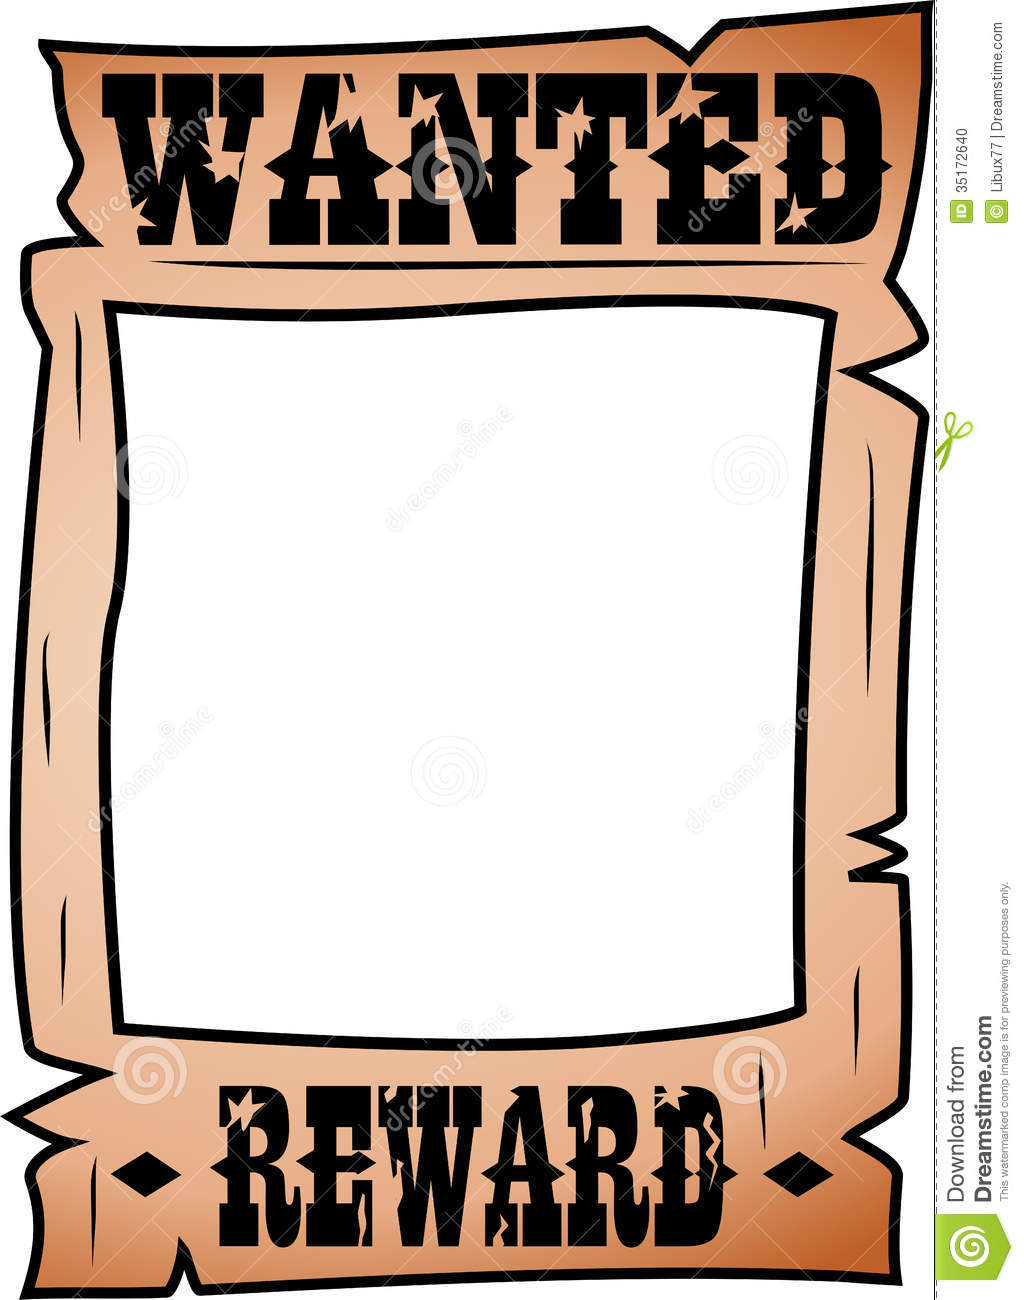 19+ Wanted Poster Clipart.